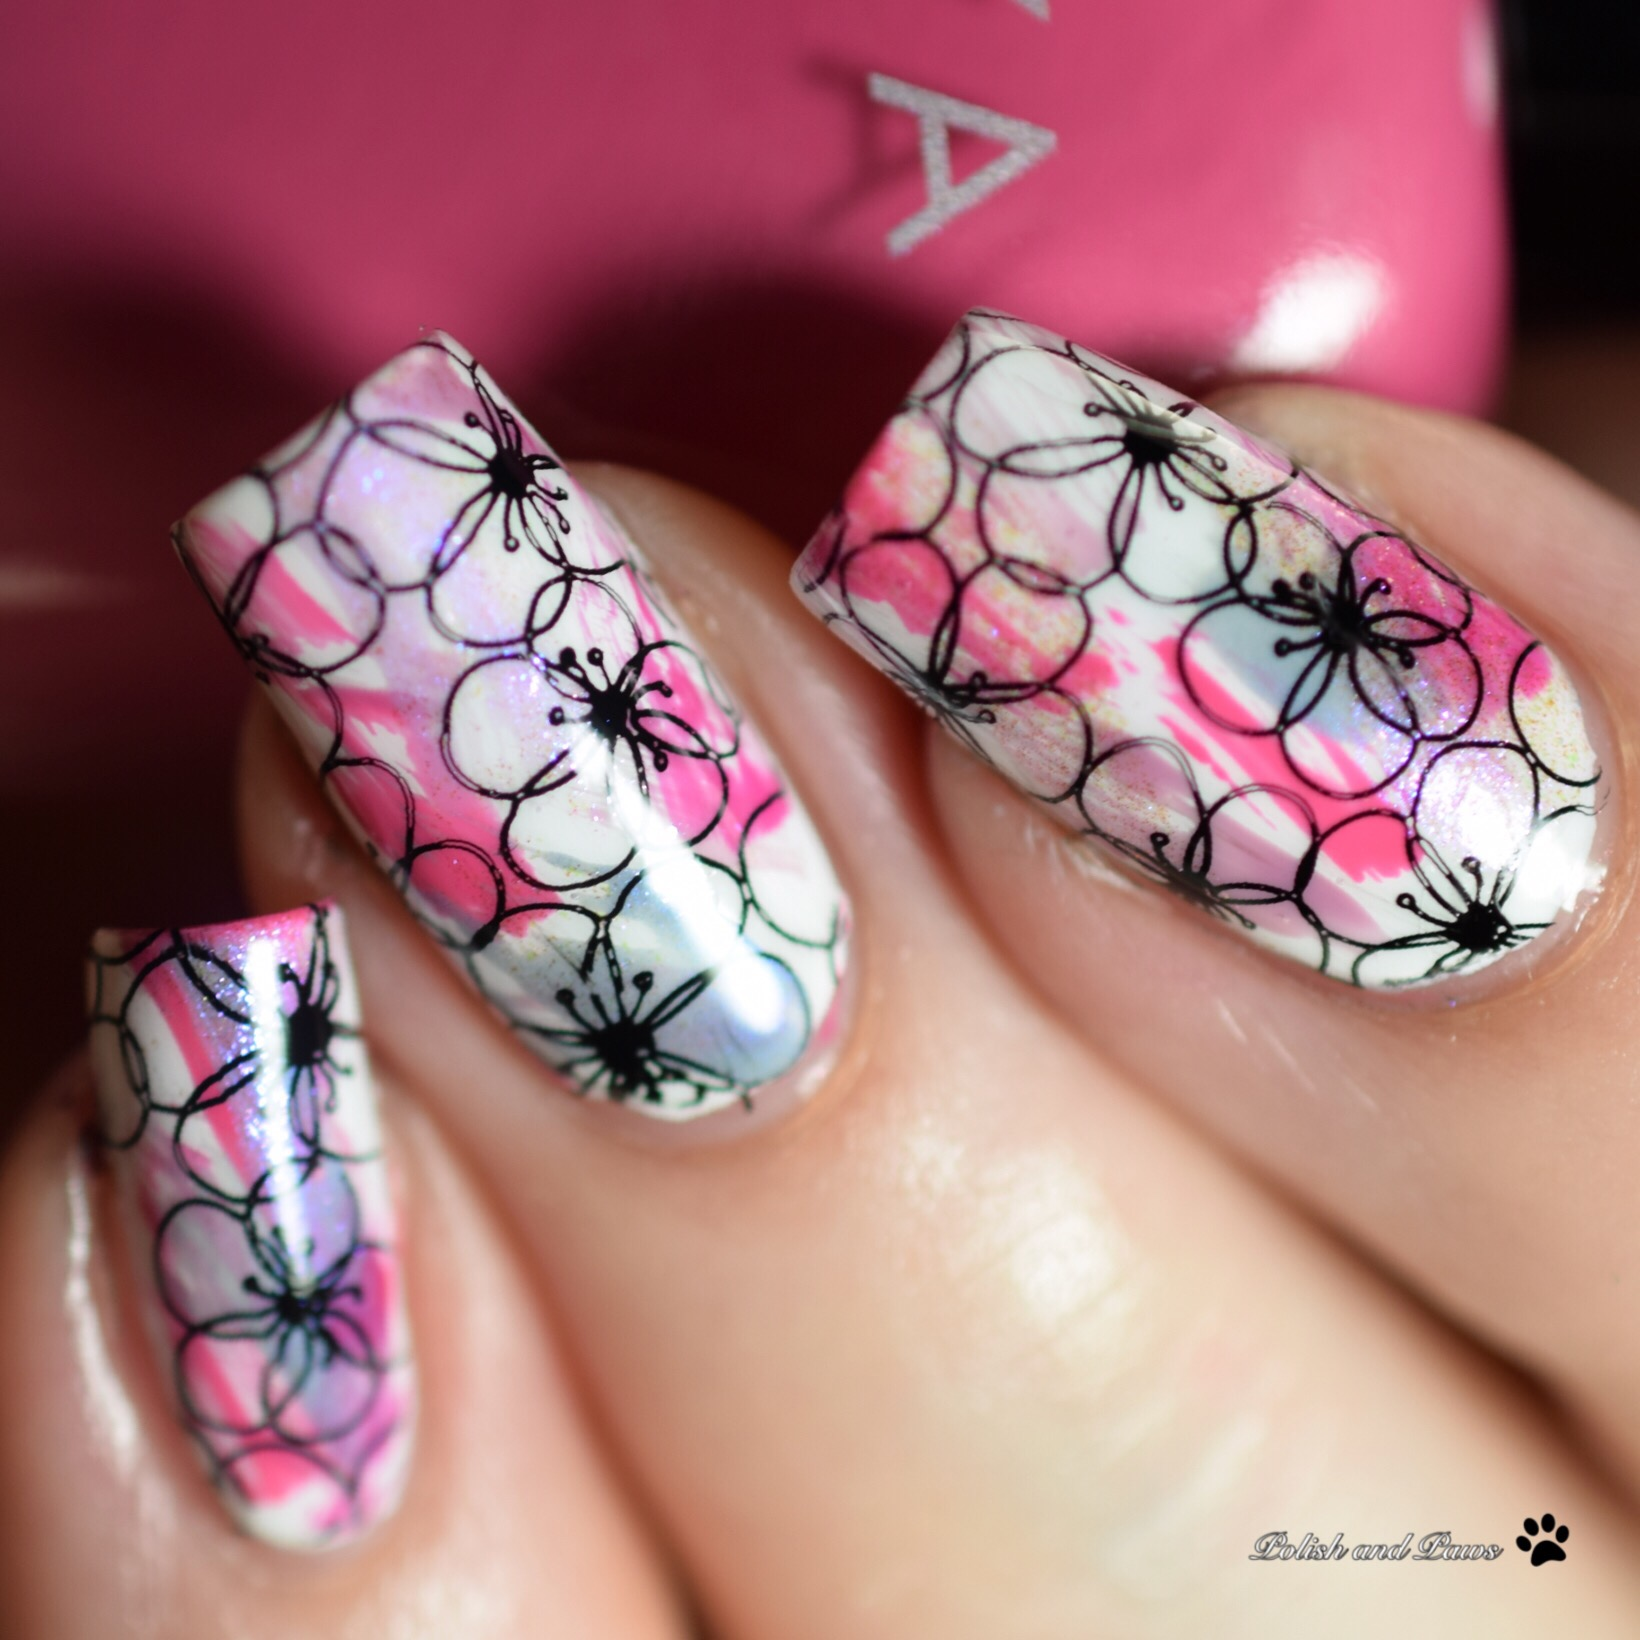 Zoya Thrive Nail Art